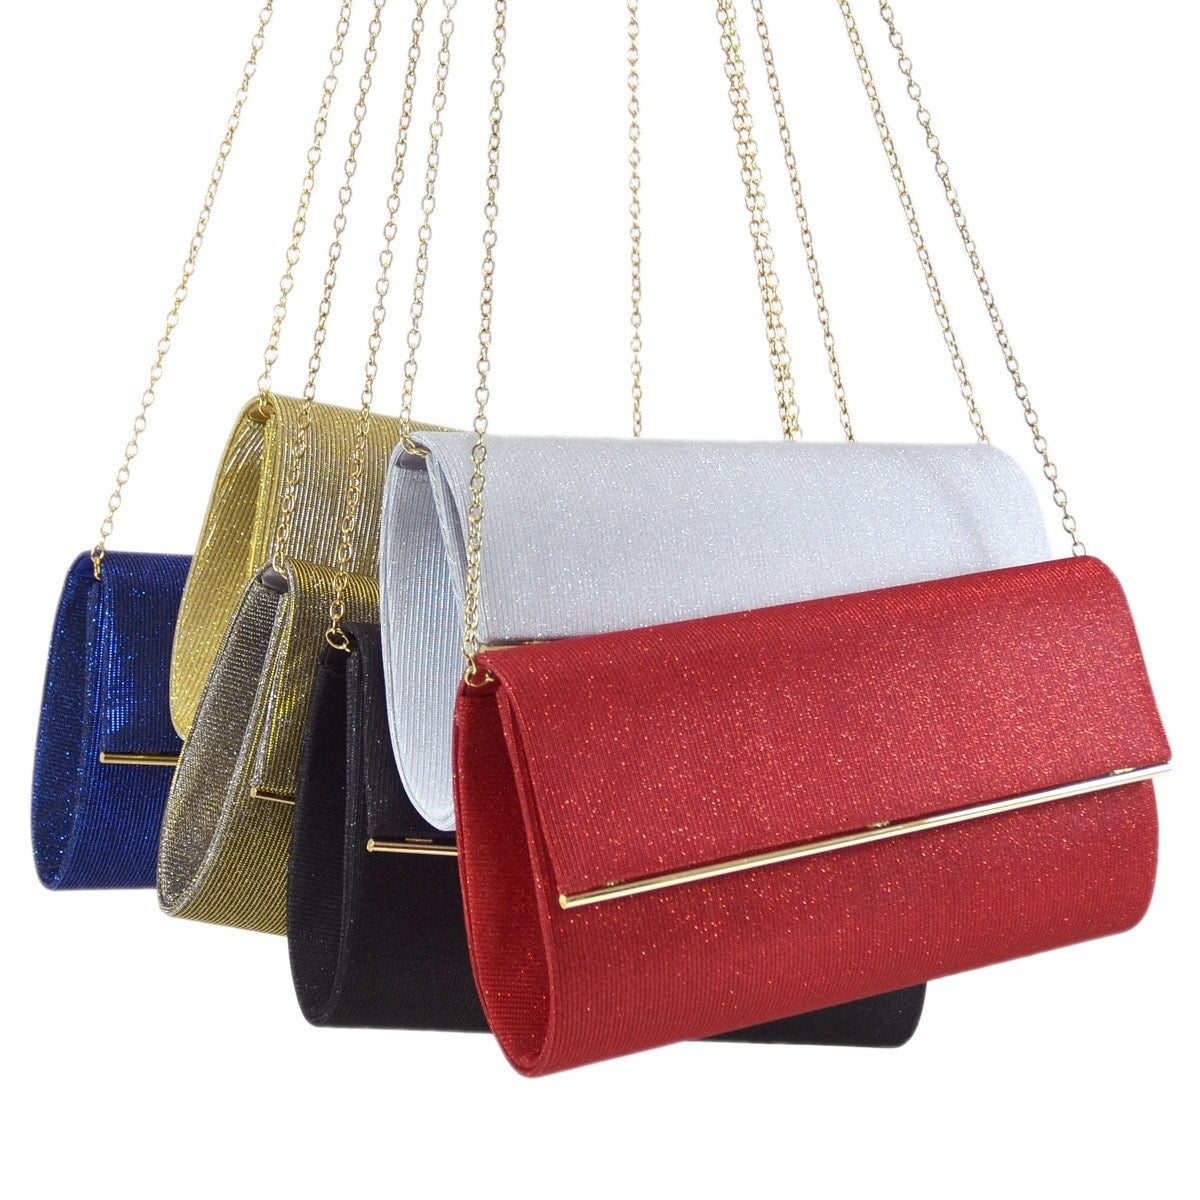 Frosted Evening Clutch with Removable Chain Strap and Polished Goldtone Frame Clasp Closure